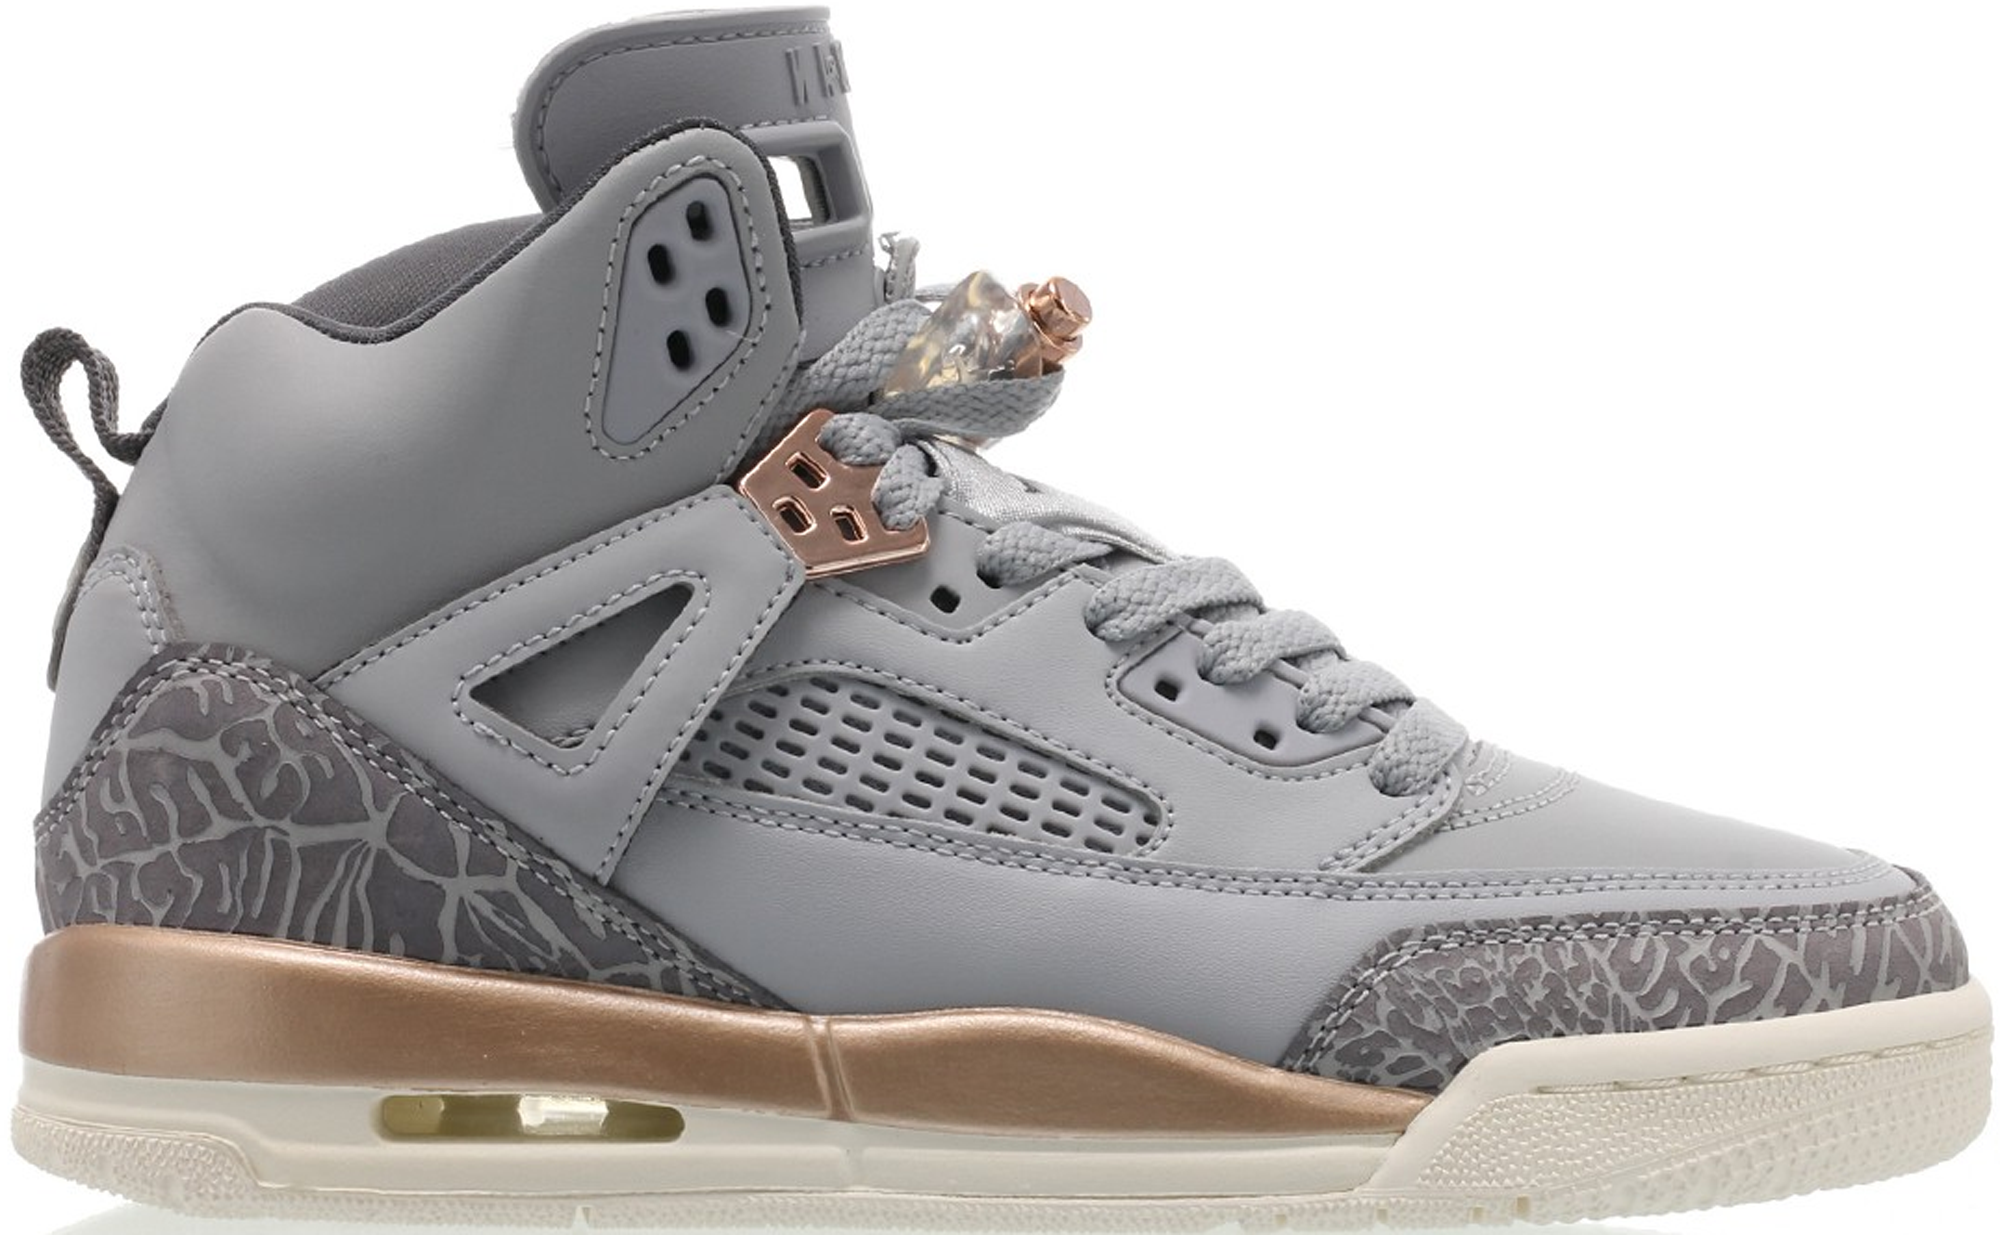 check out 958fe ad145 ... get air jordan spizike shoes release date 68c0f b57b5